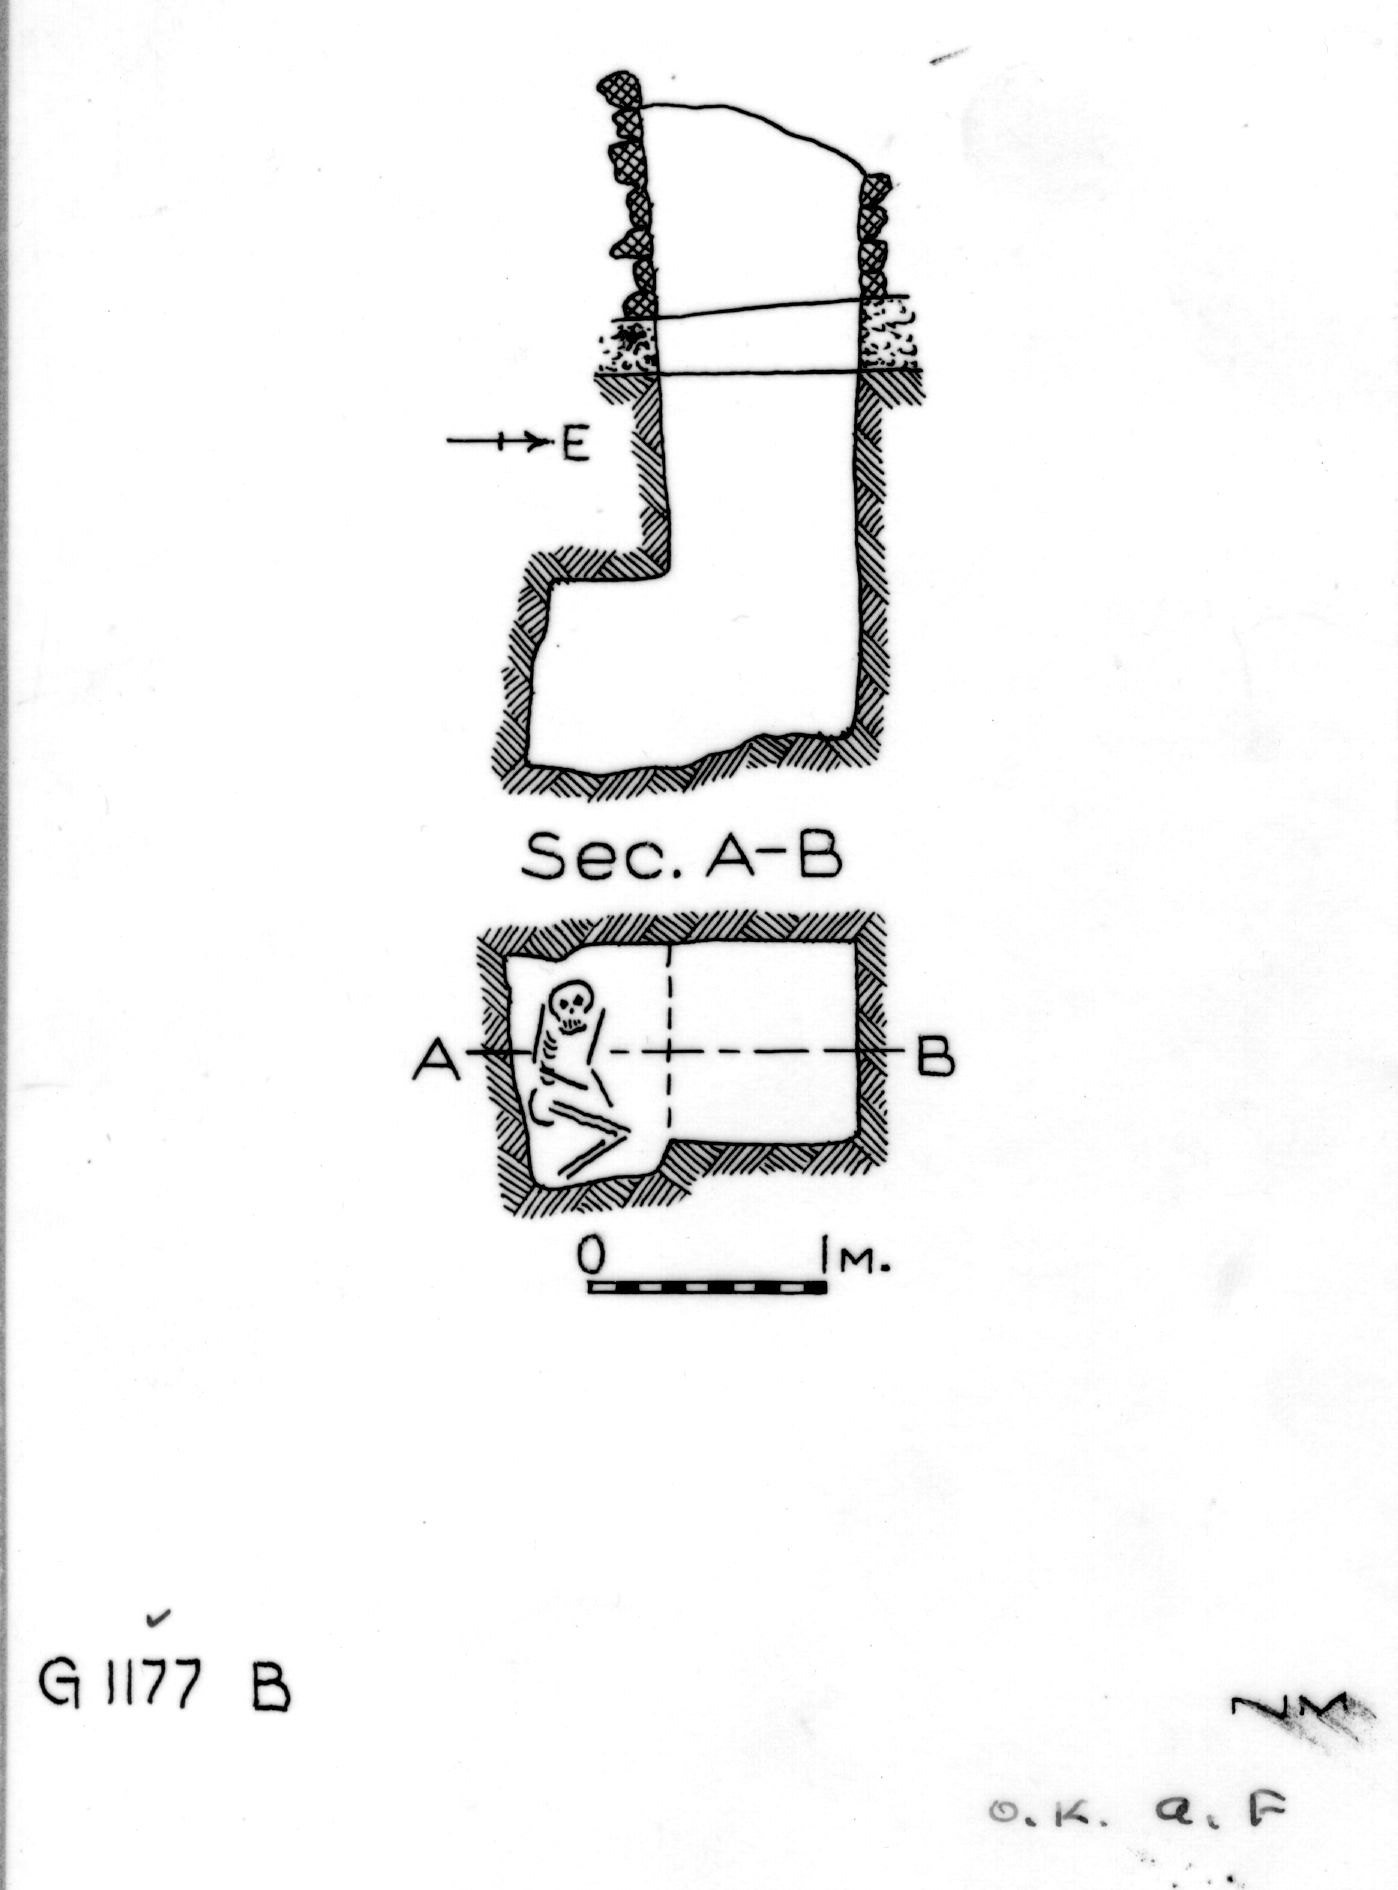 Maps and plans: G 1177, Shaft B